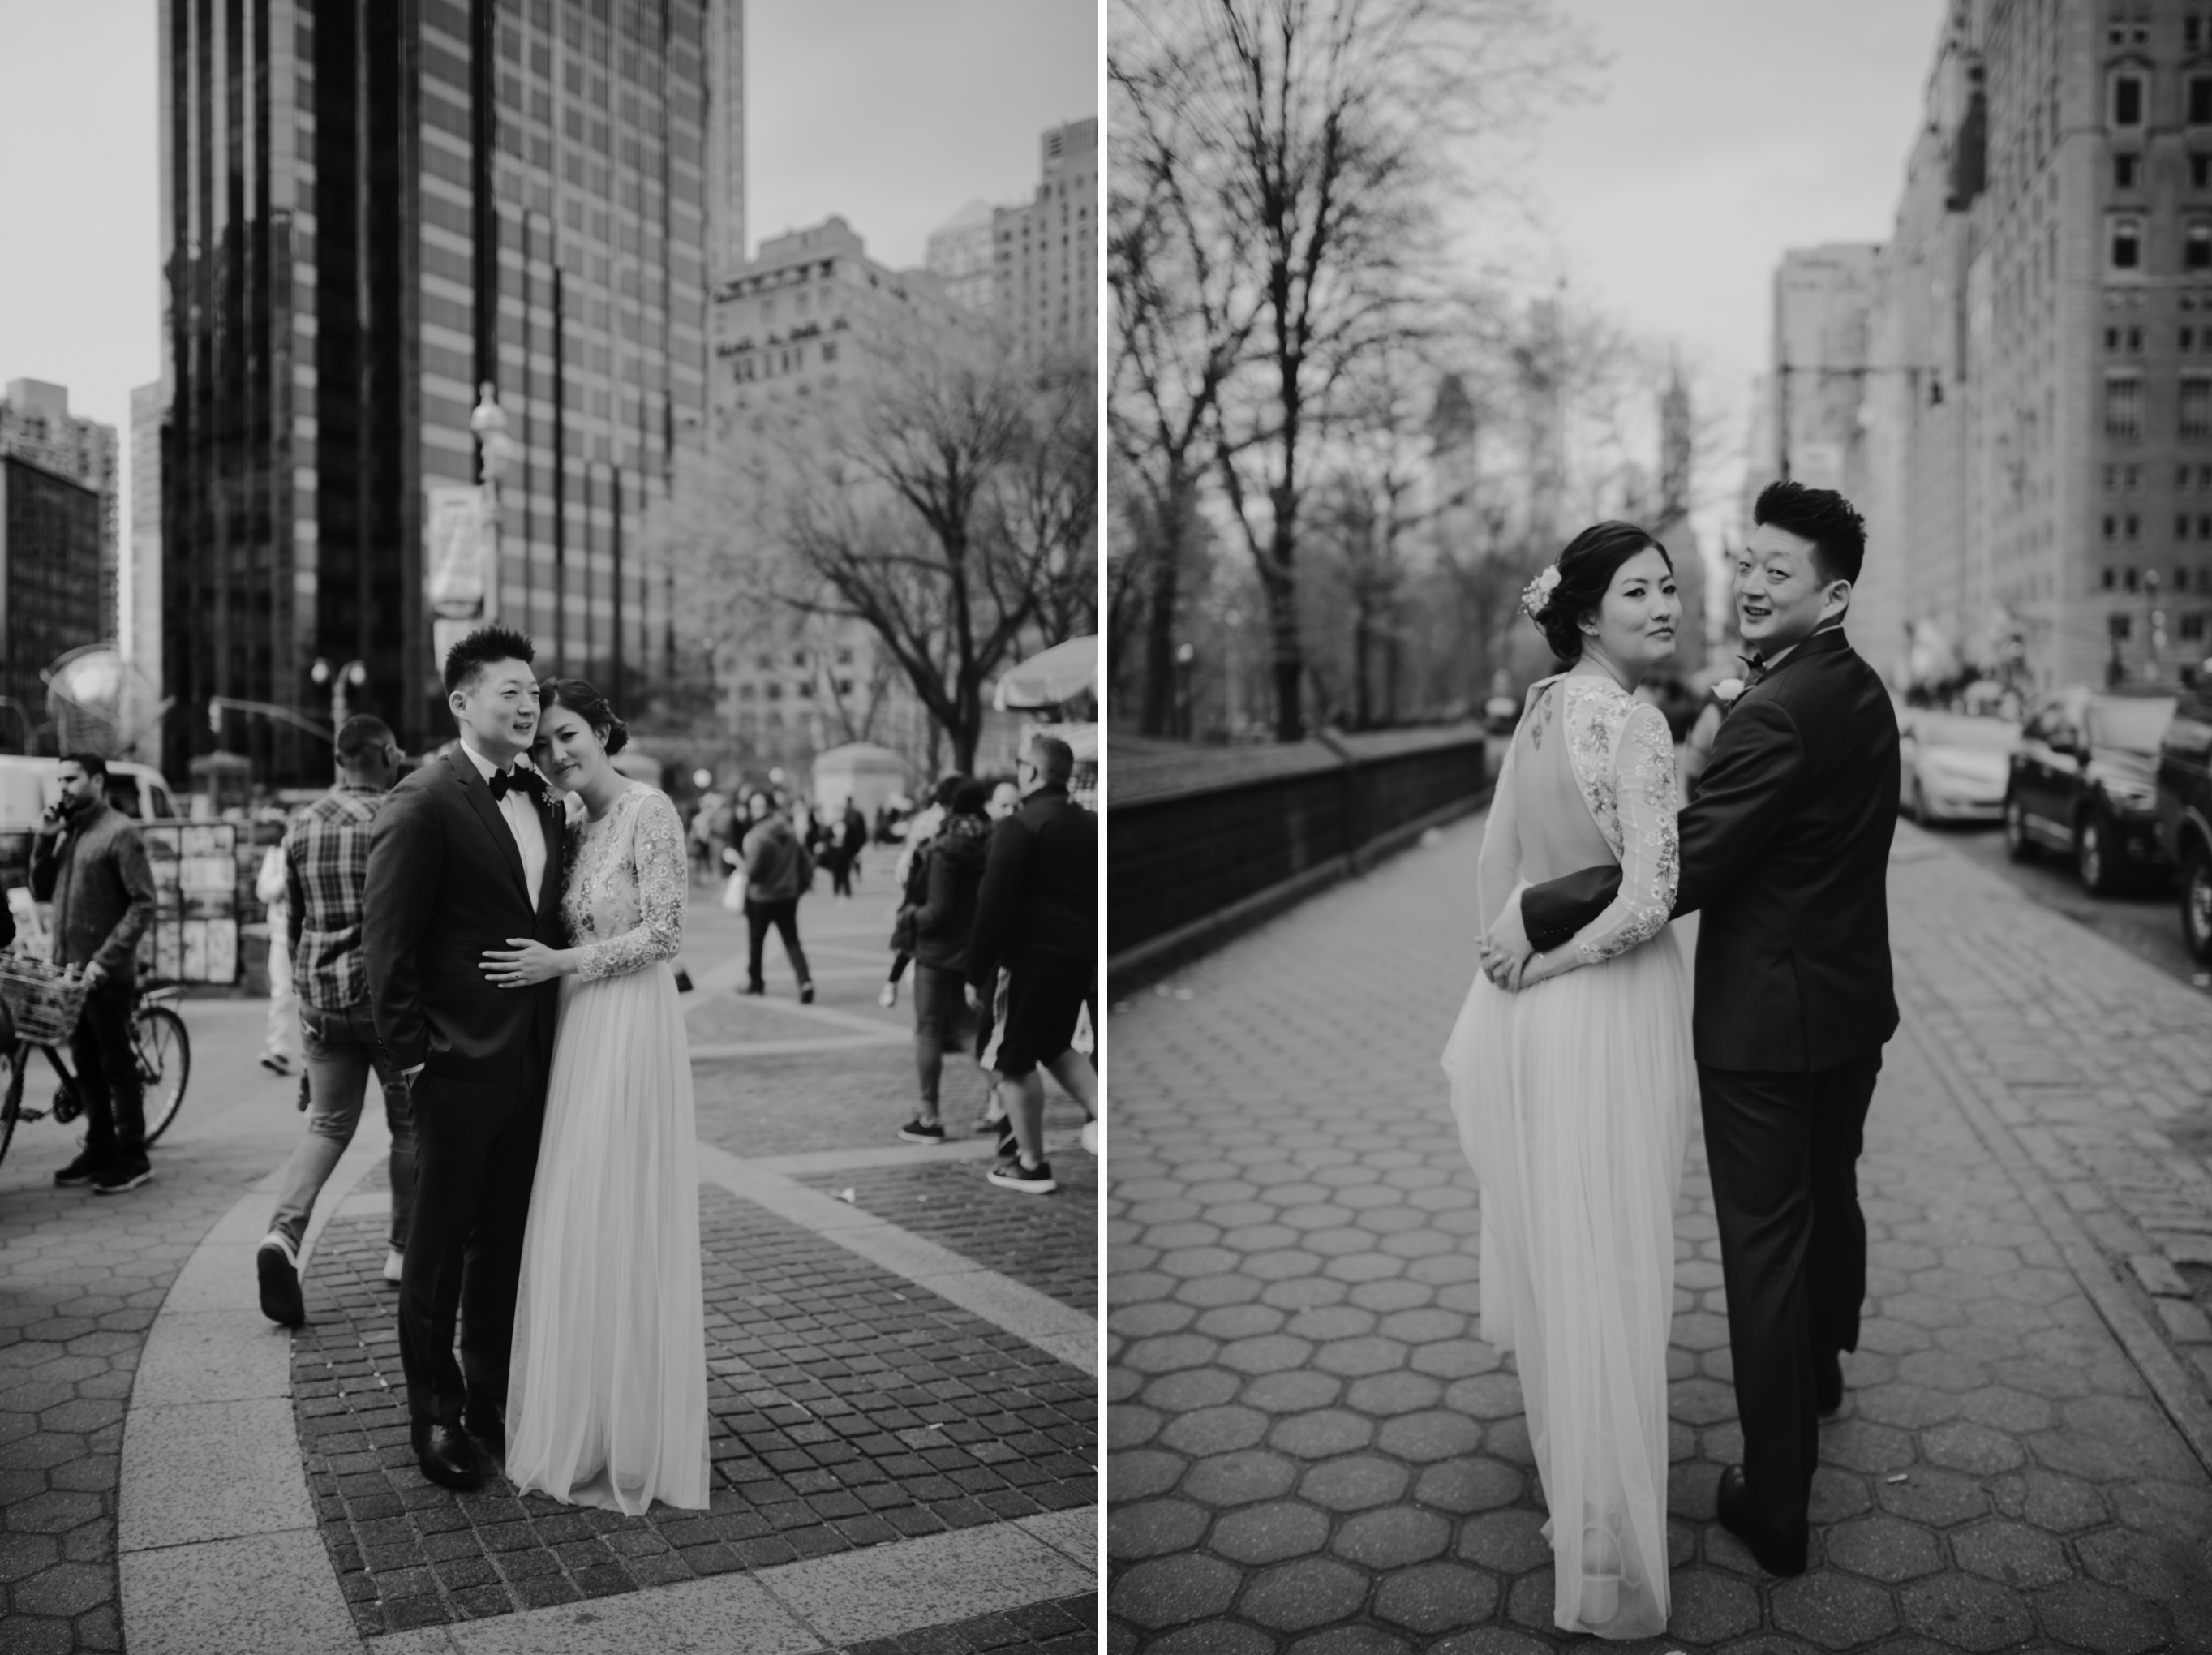 NYC bride & groom to elope at Central Park Cop Cot.